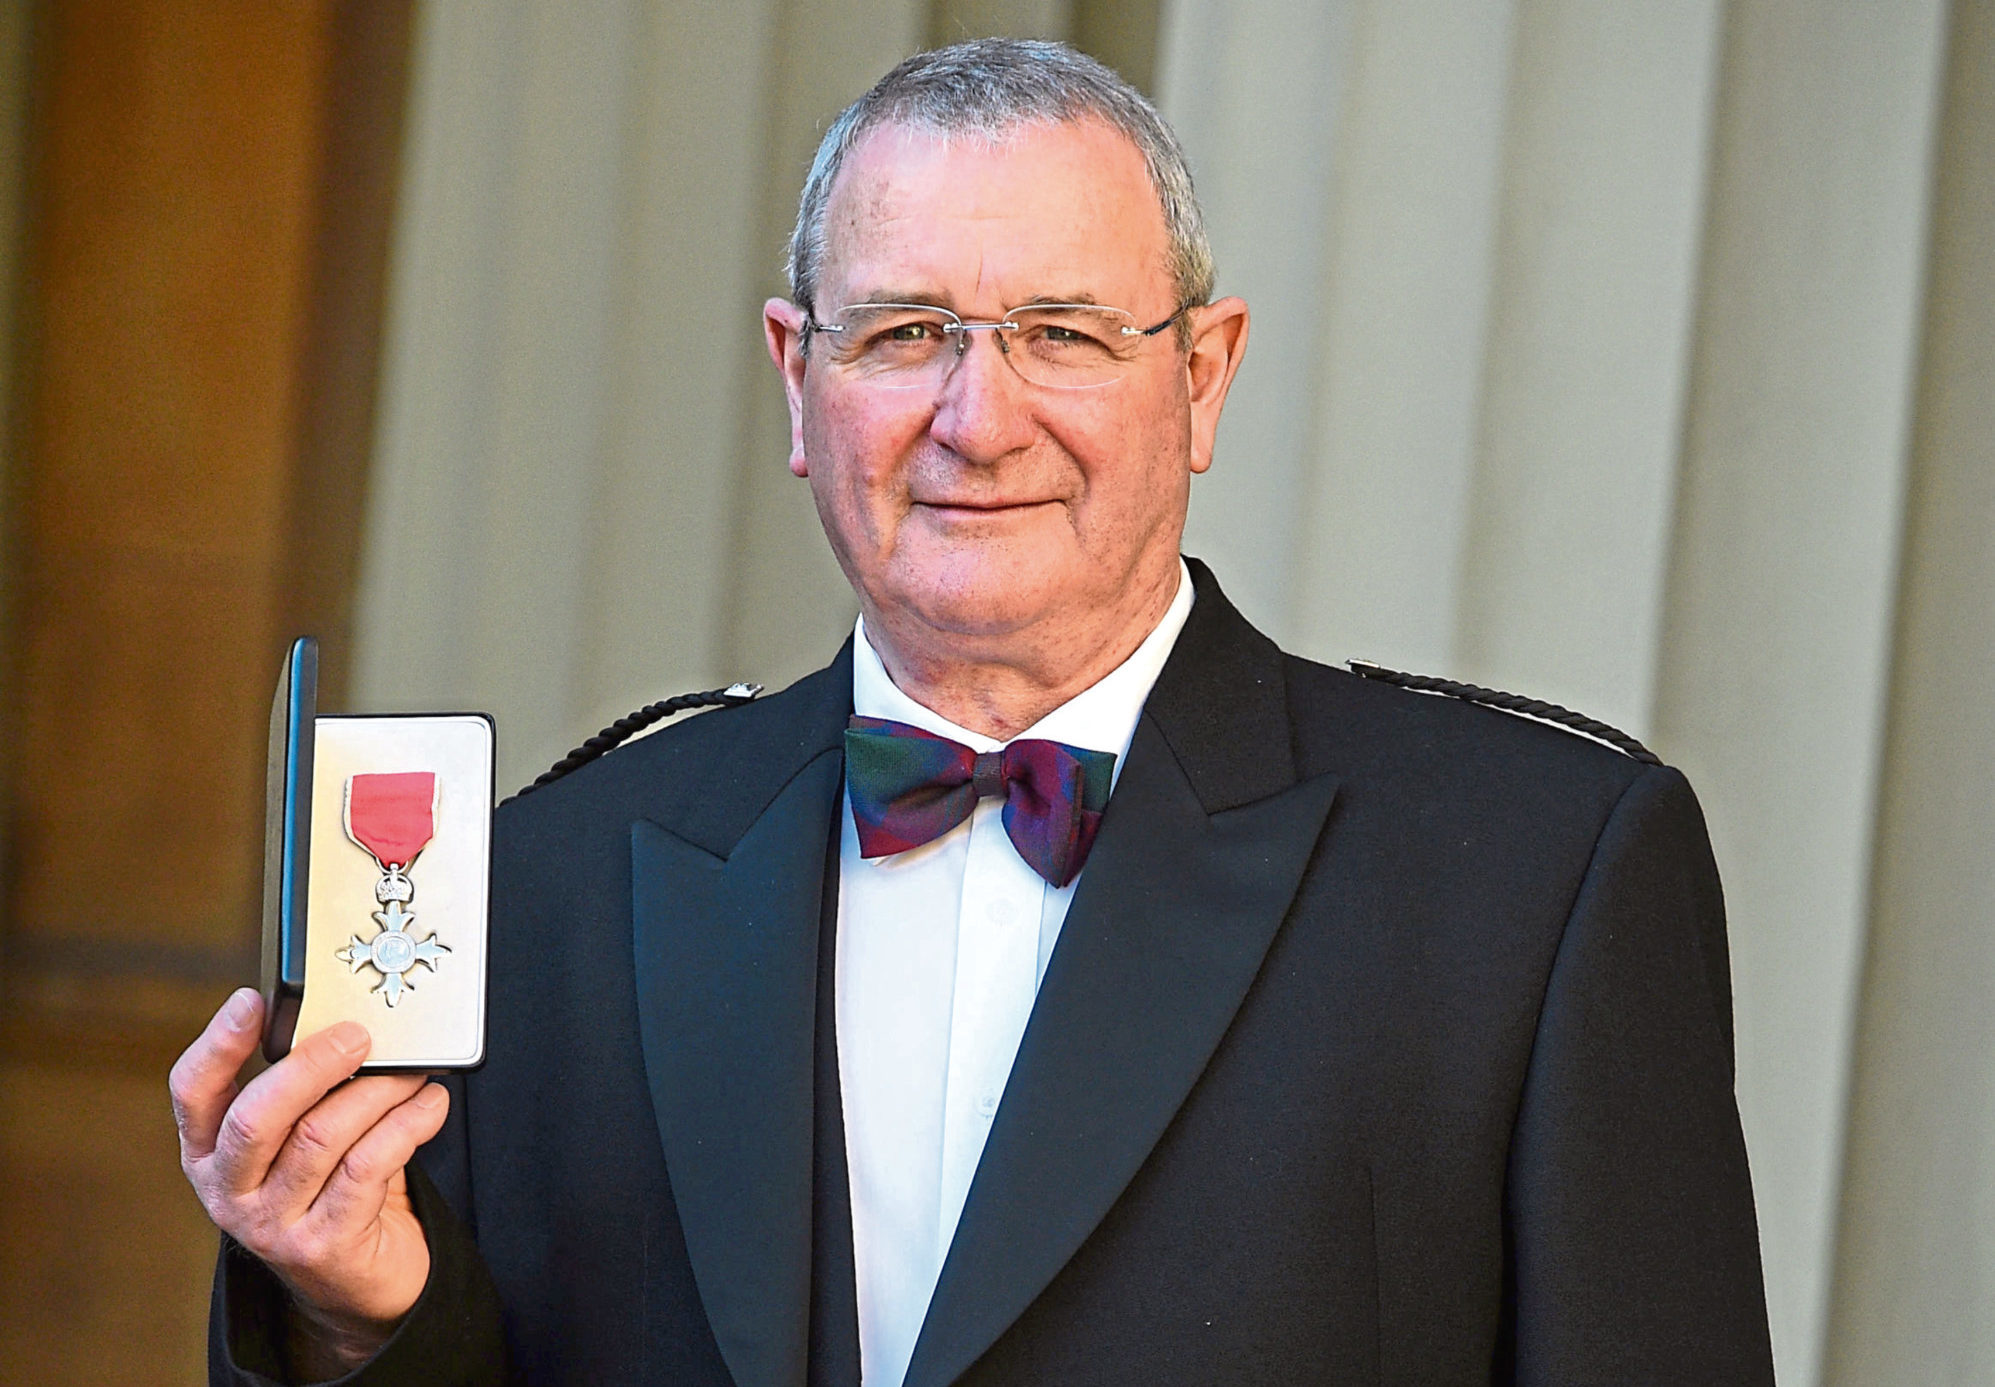 Aberdeen lifeboat veteran William Deans after receiving his Member of the Order of the British Empire (MBE) medal for services to saving lives at sea